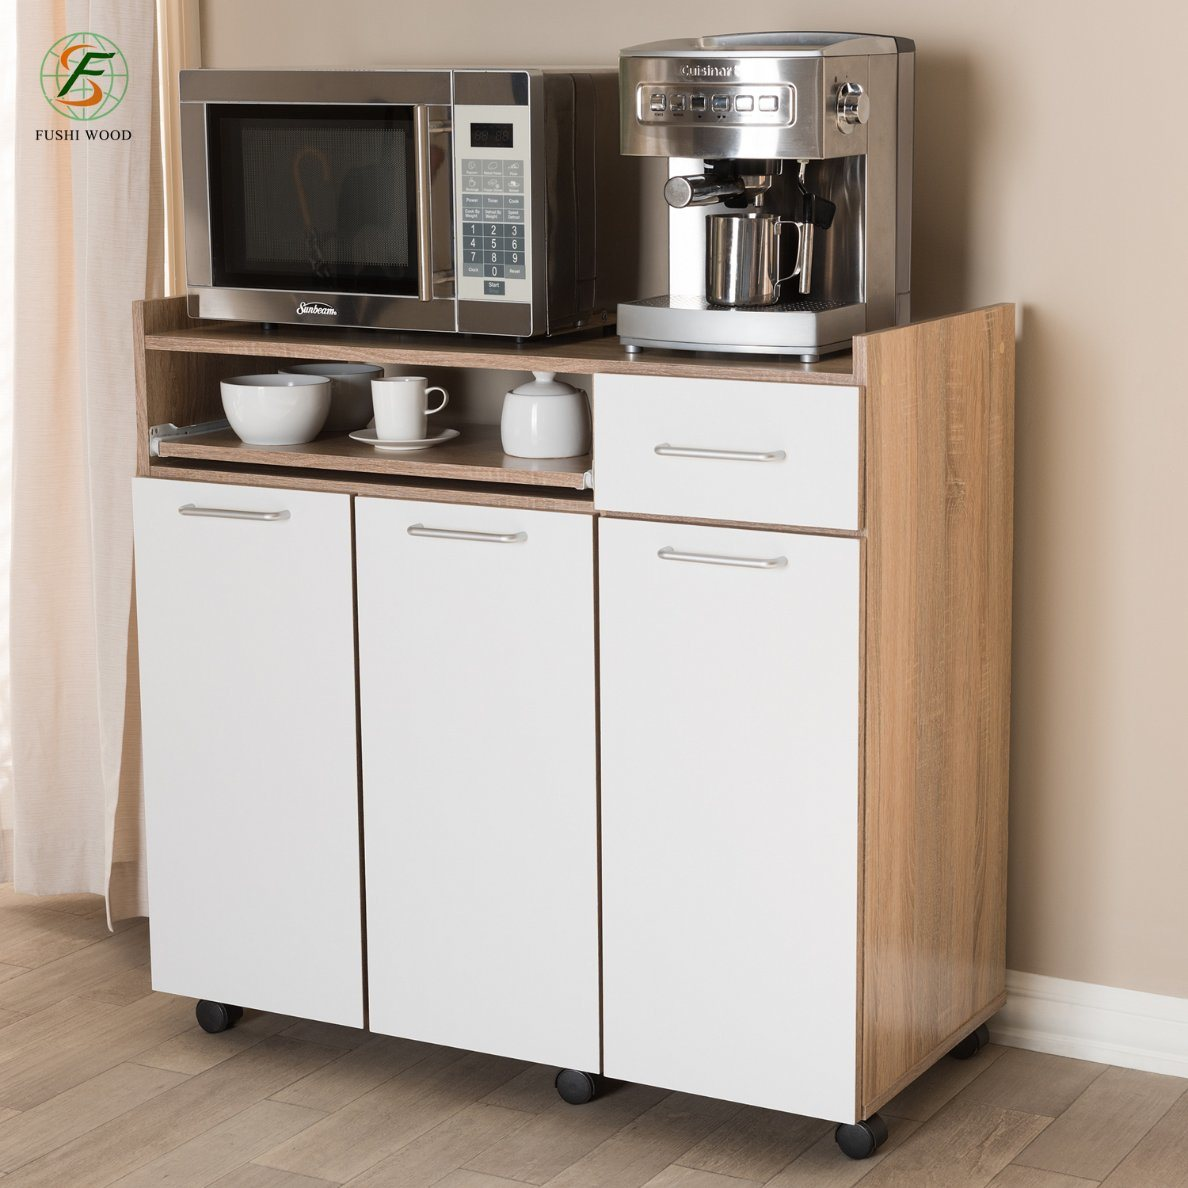 [Hot Item] Oak and White Finish Kitchen Cabinet with Pulleys for Microwave  Oven